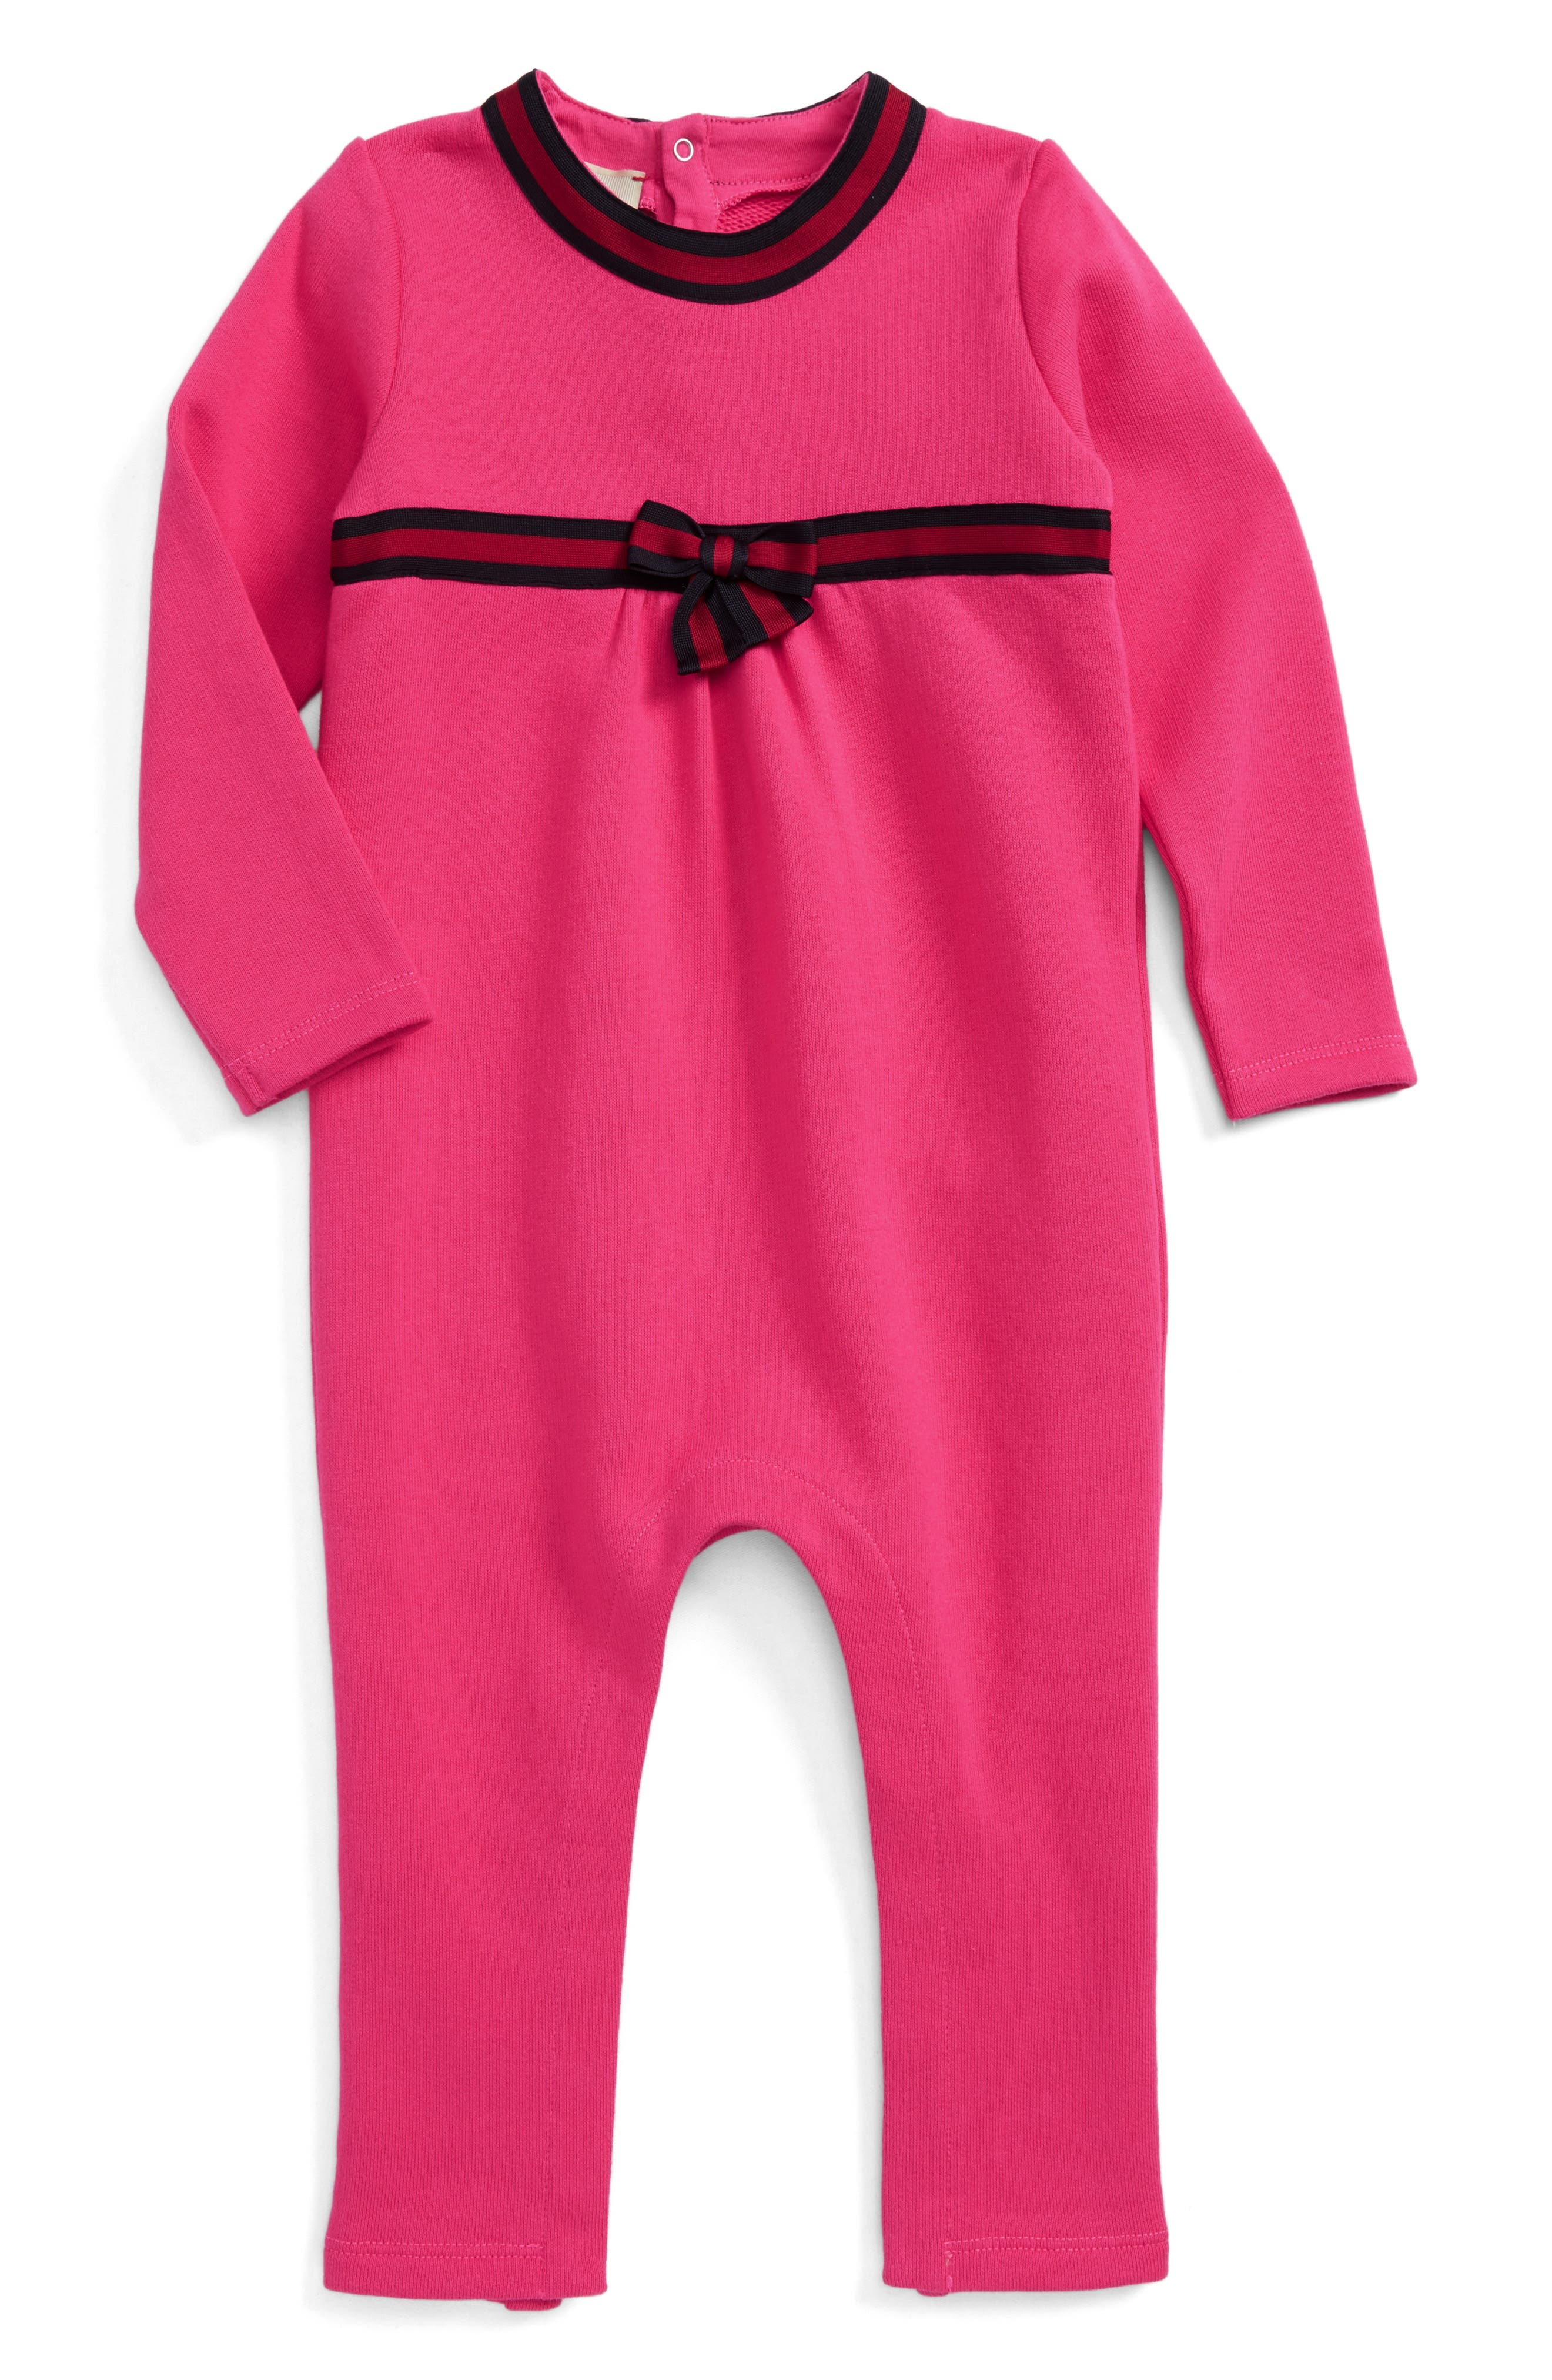 Main Image - Gucci Knit Romper (Baby Girls)